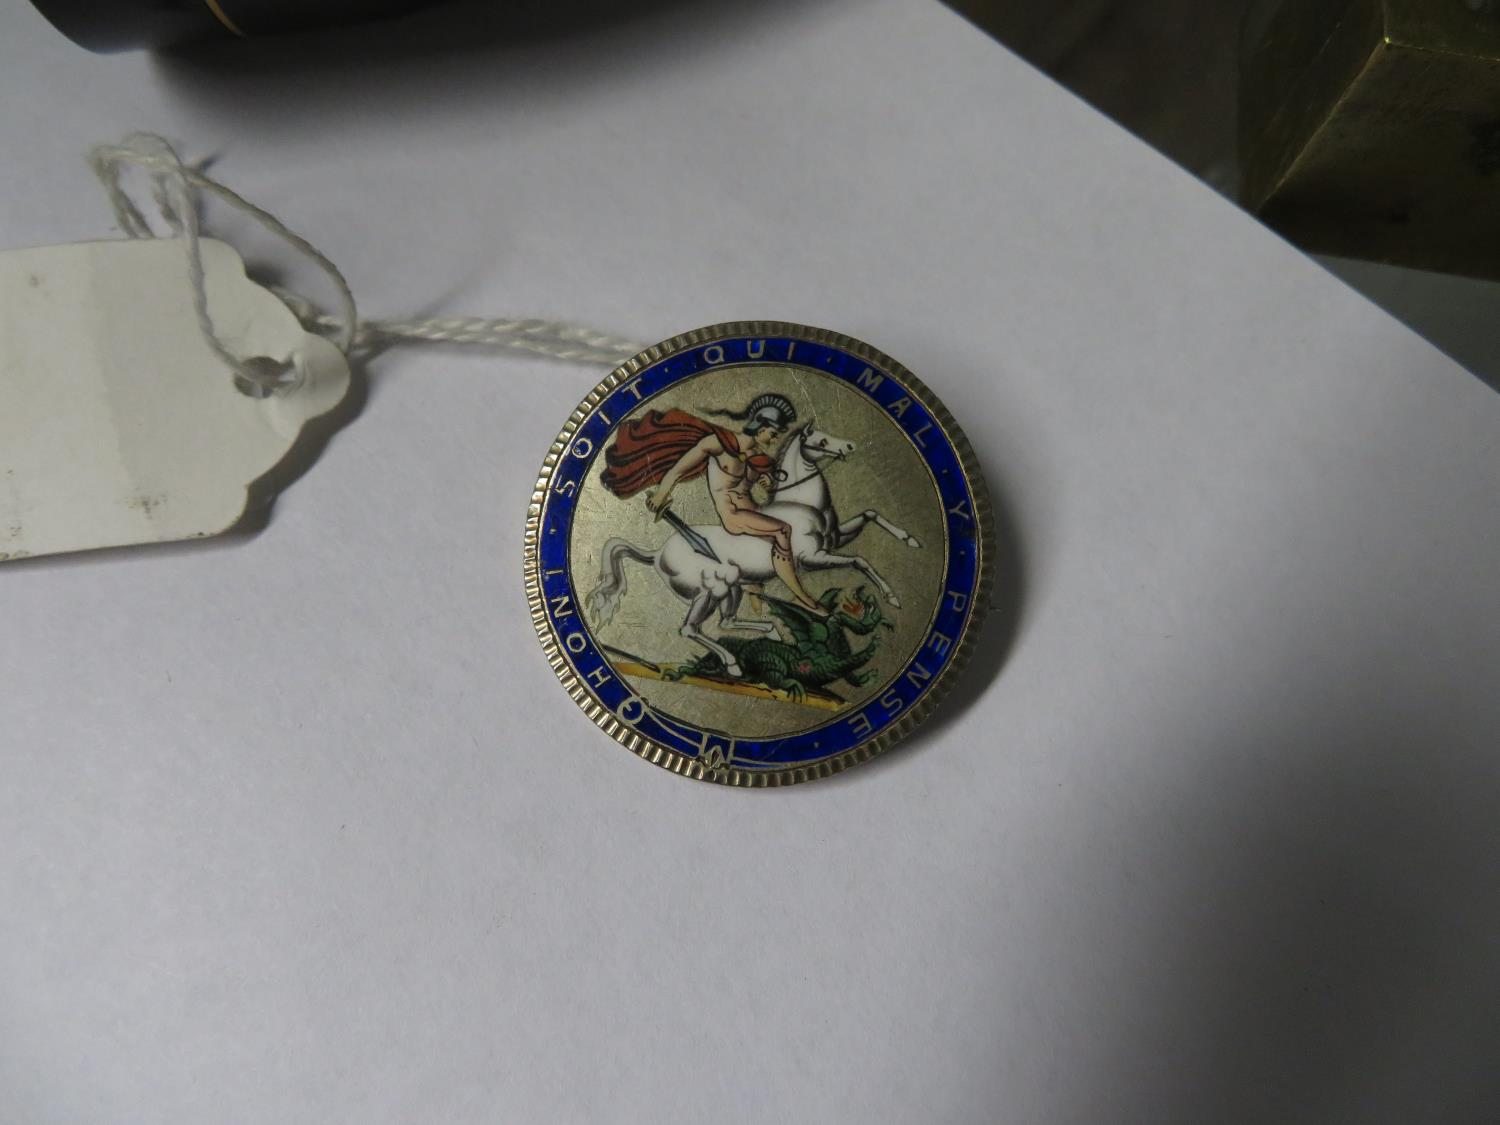 Lot 53 - Georgian enamelled silver coin turned into brooch